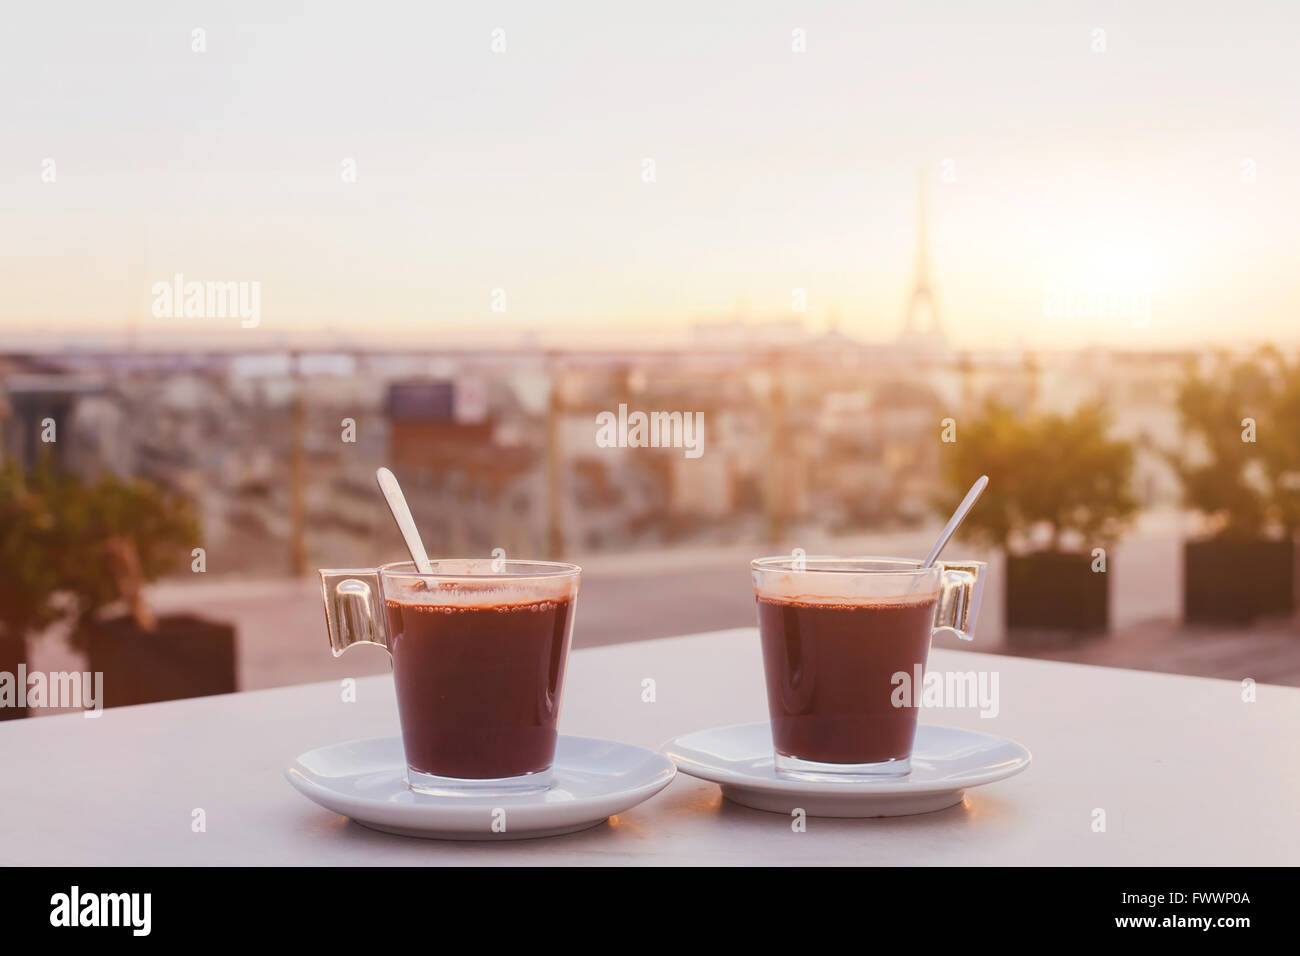 two cups of coffee or hot chocolate and Paris skyline at sunset, cafe with panoramic view of the city with Eiffel - Stock Image